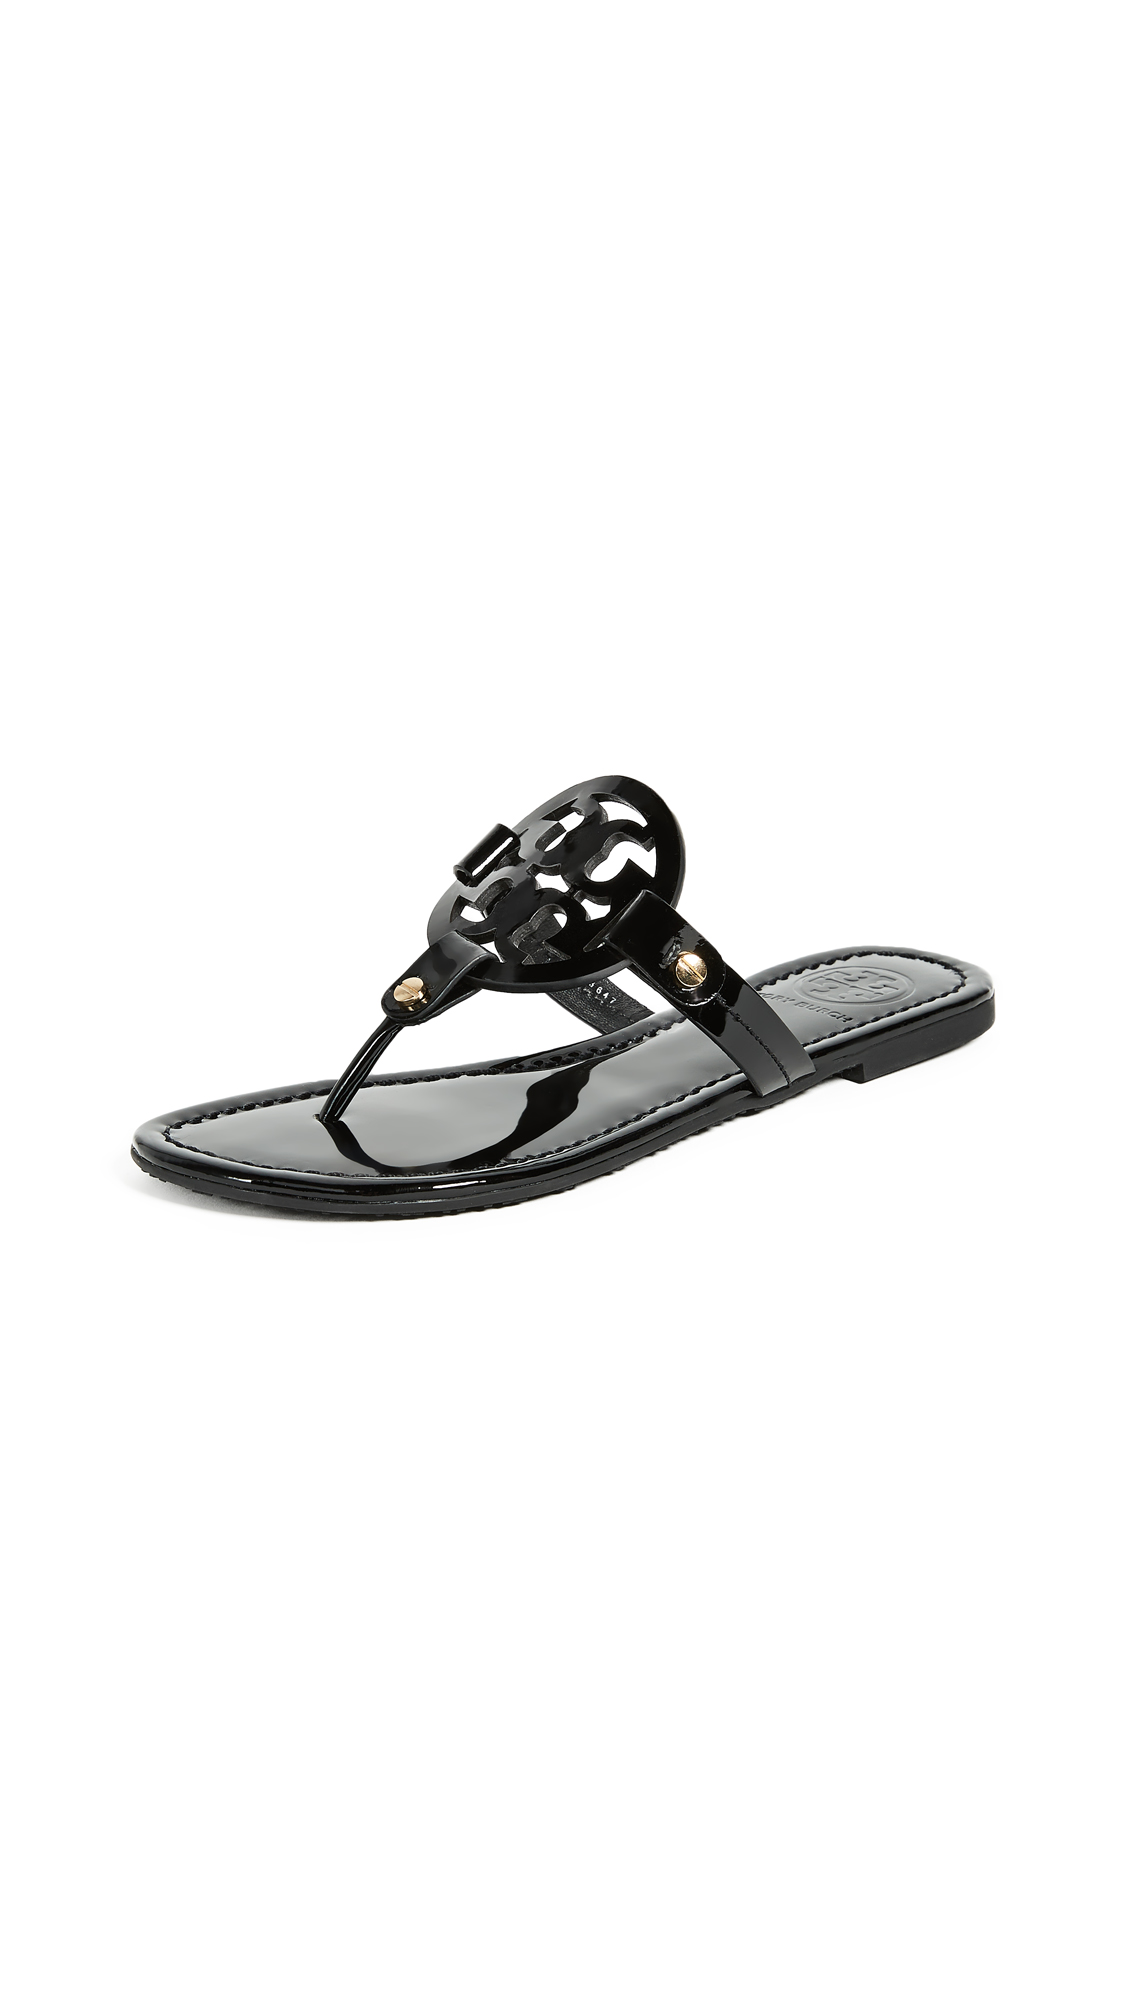 Tory Burch Miller Thong Sandals - Black